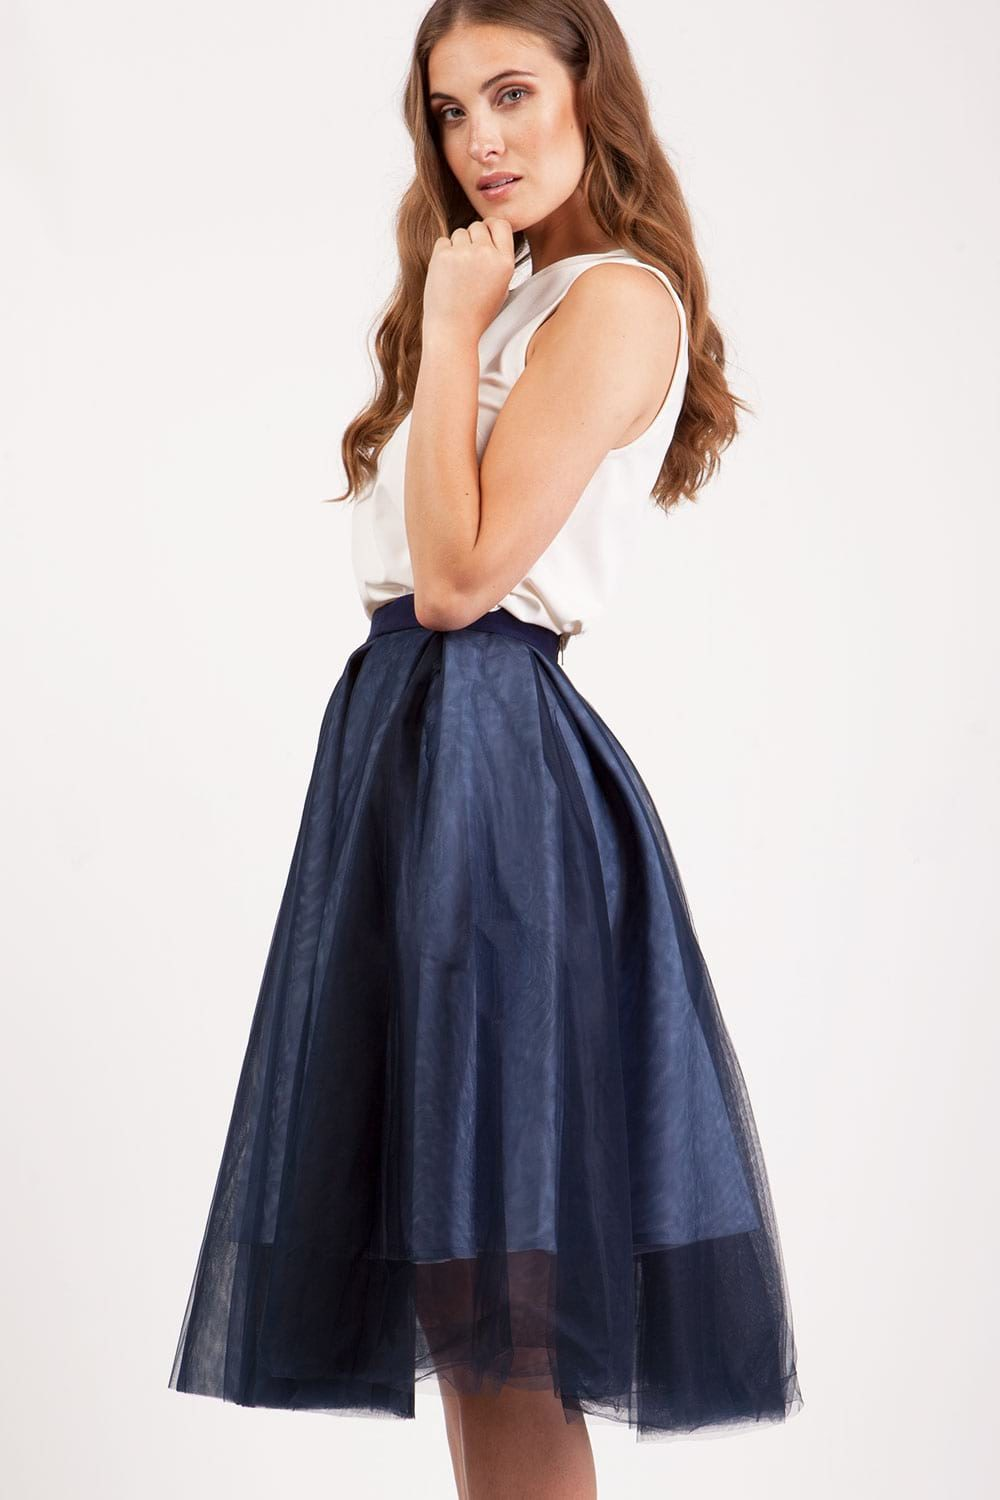 Hybrid Fashion 1137 Ellie Tulle Navy Midi Skirt